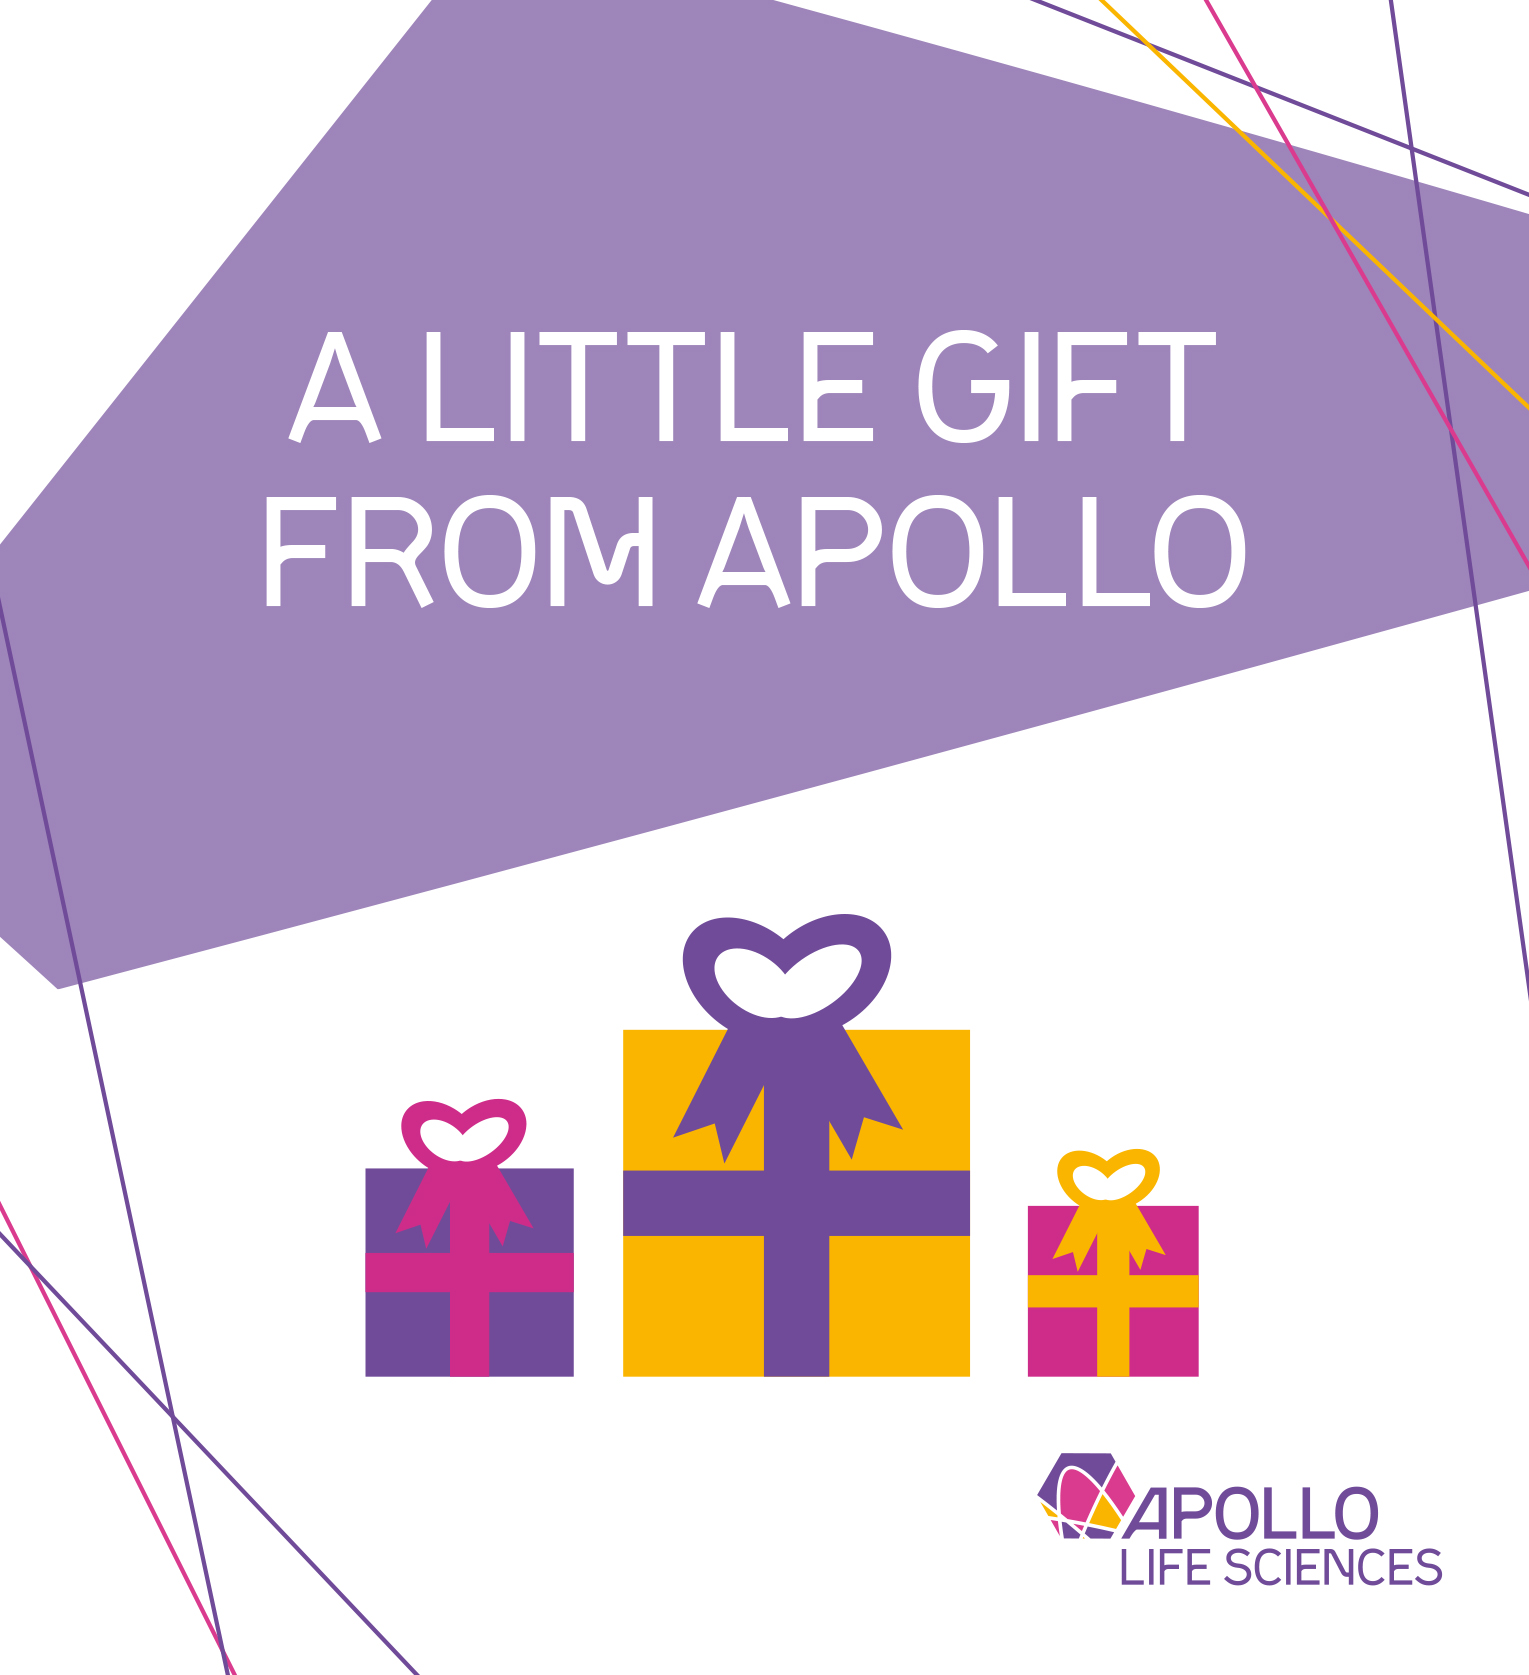 A little gift from Apollo thumbnail image